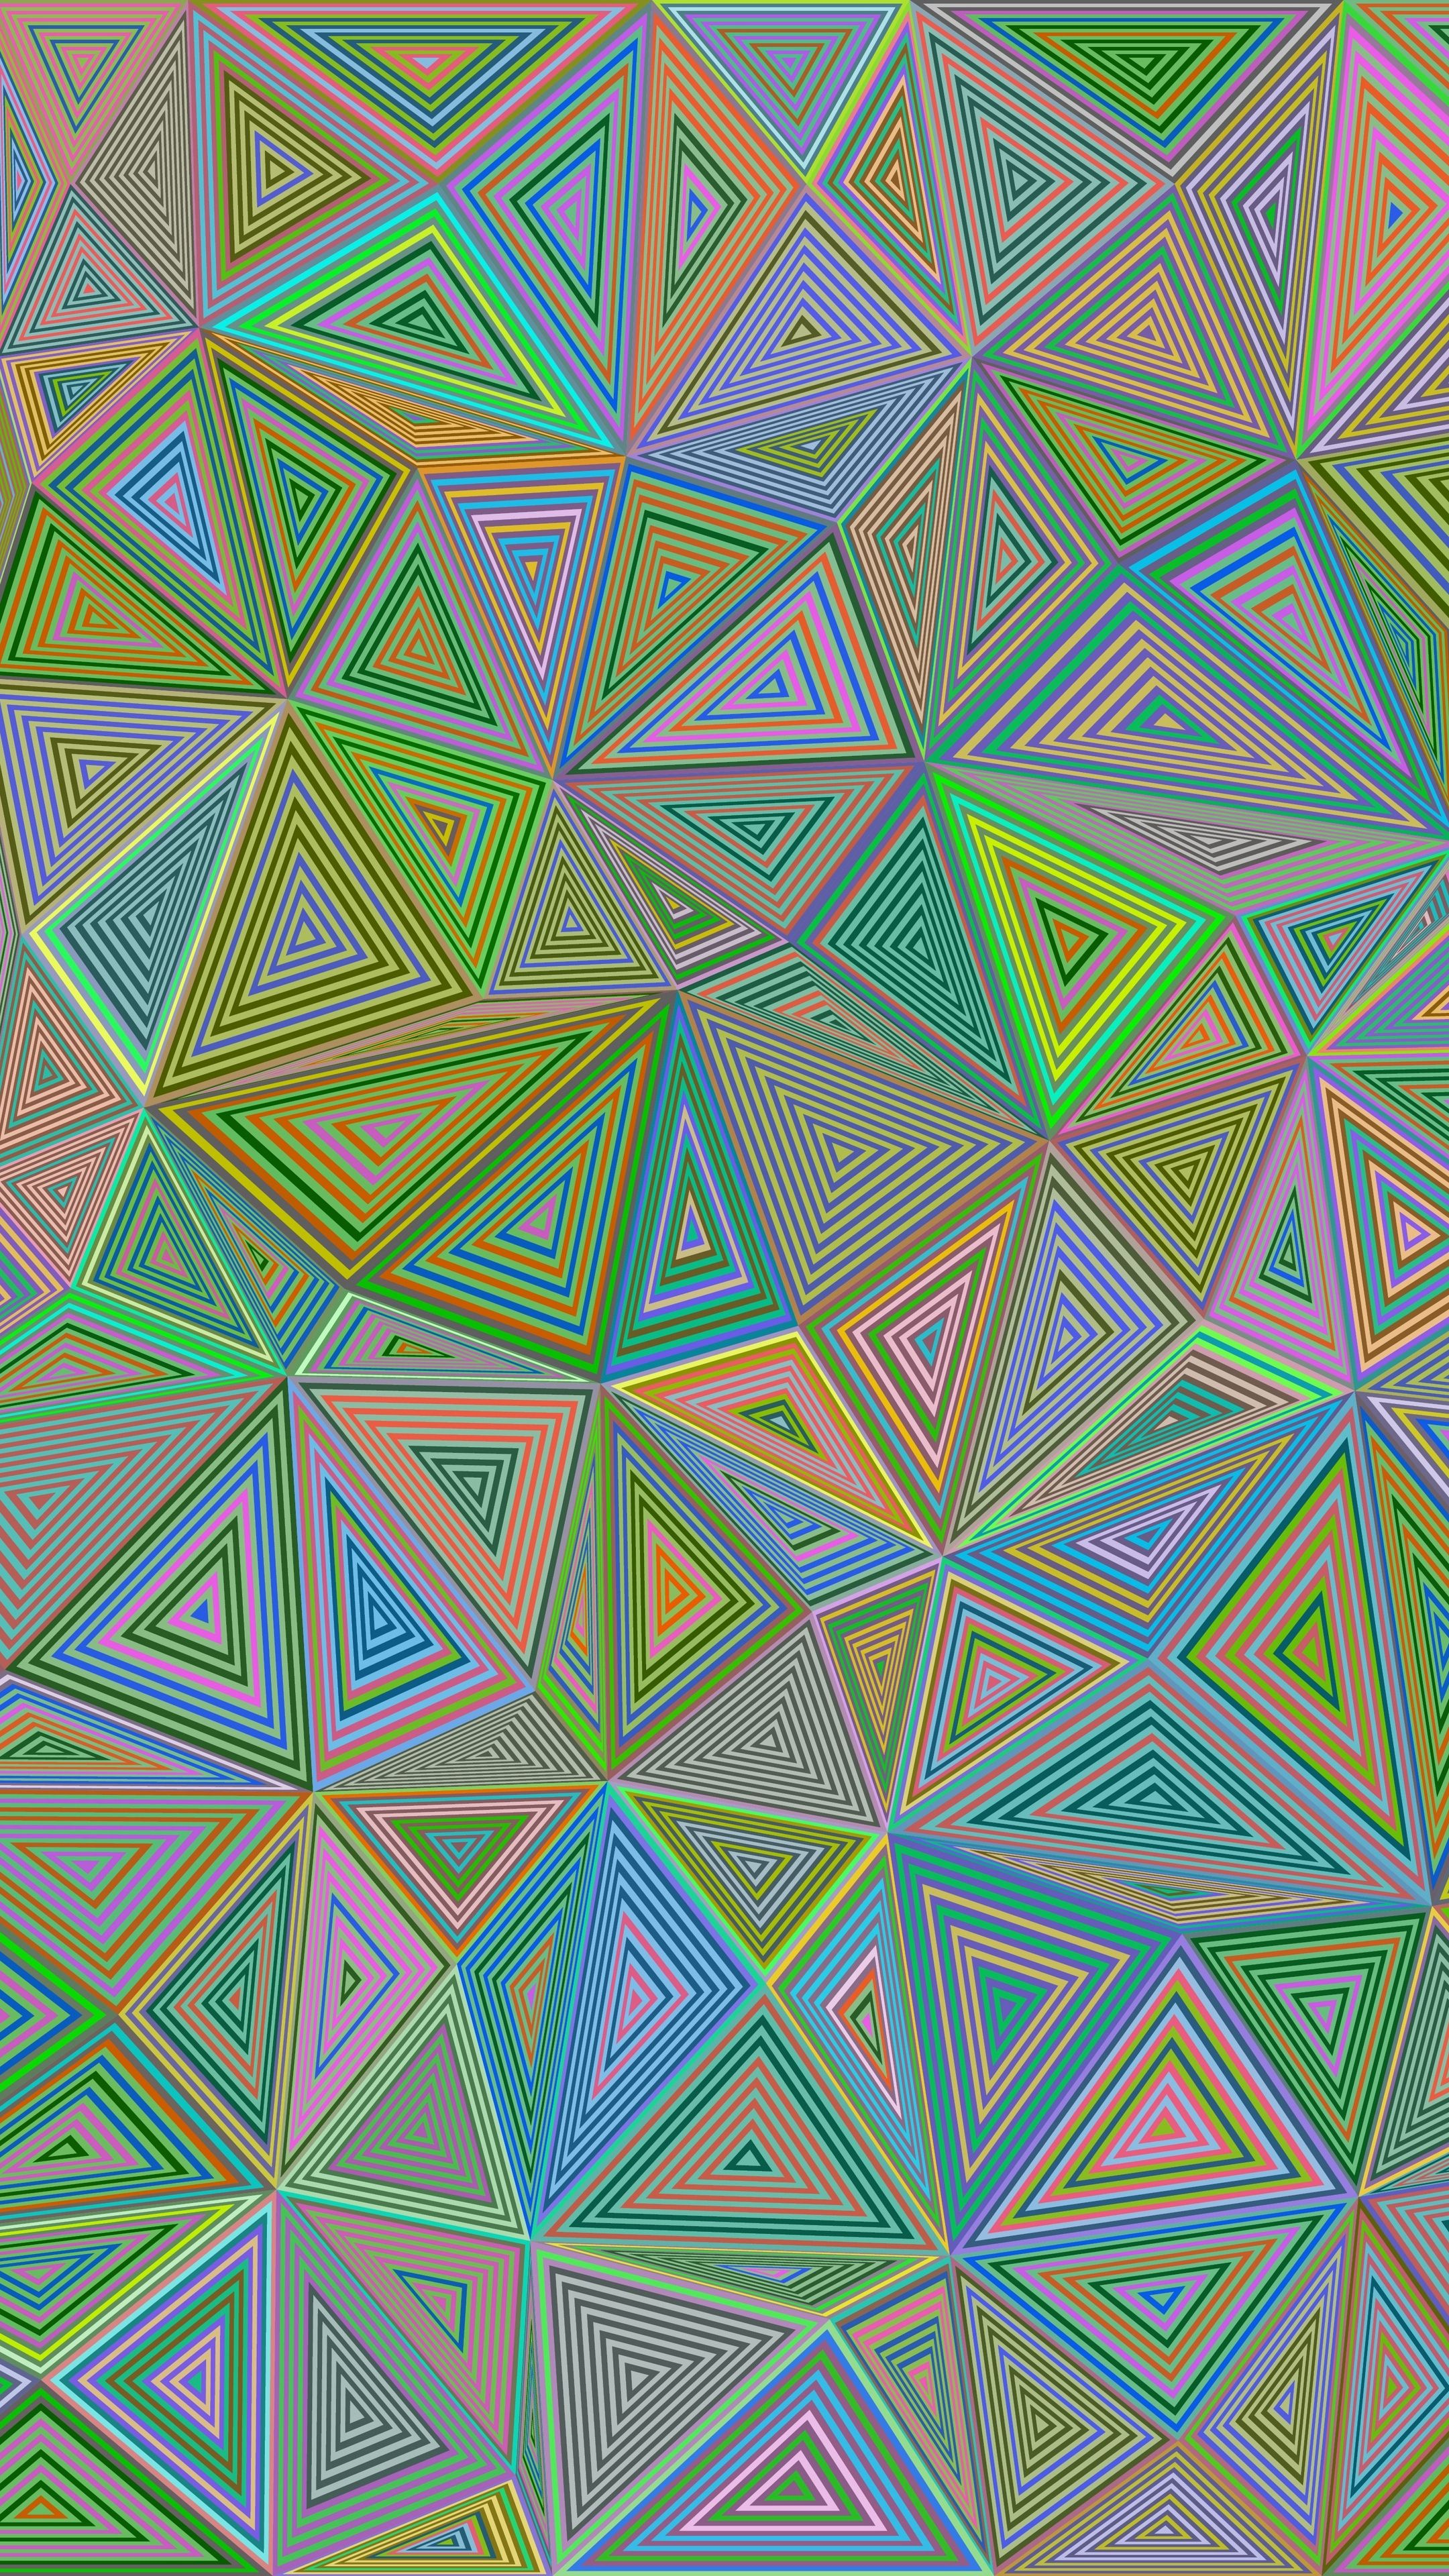 Abstract Polygon Triangle Illusion Geometric Wallpapers Hd 4k